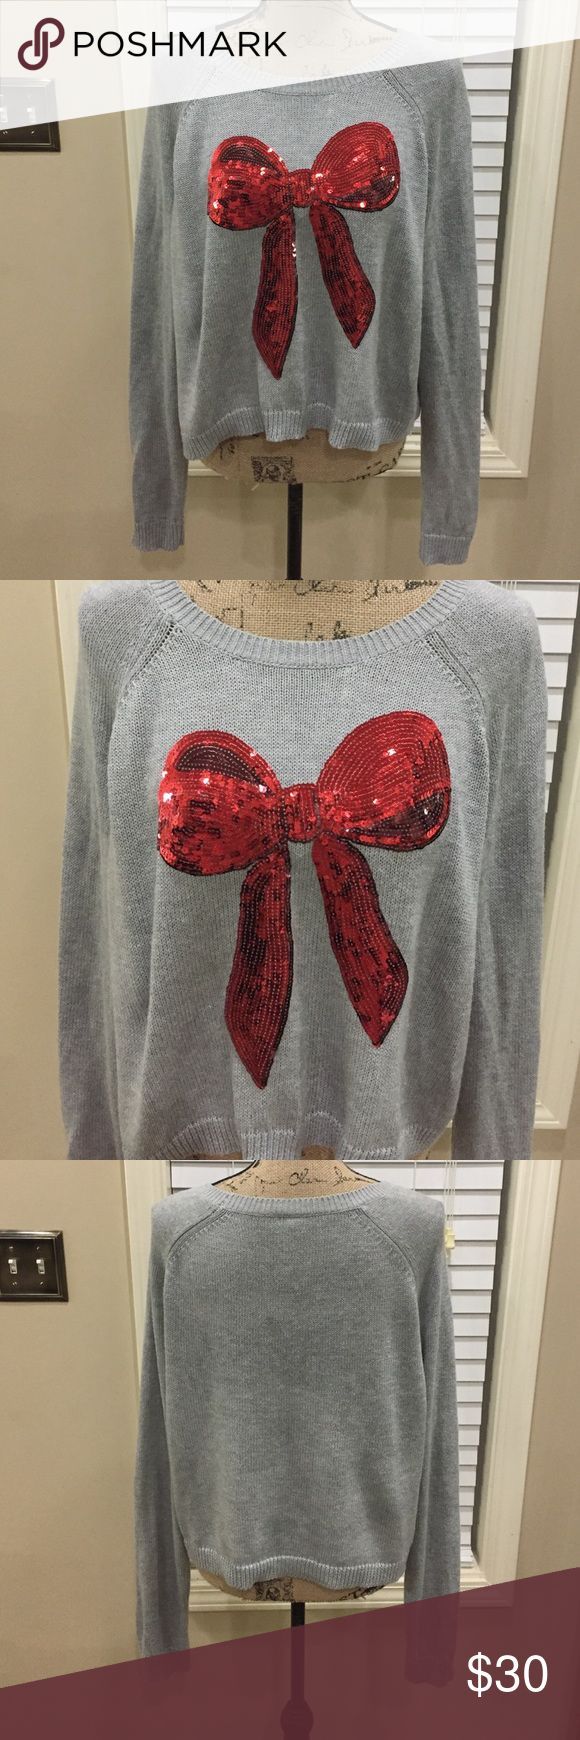 "Boutique grey sweater with sequined bow front Boutique grey sweater with sequined bow front-wildfox style! Super cute and soft-cropped look. Preloved in excellent condition. Oversized fit. Pit to pit measurement is 24"". Length 22"". So fun! 55% cotton 45% polyester-very soft and cozy. boutique Sweaters Crew & Scoop Necks"